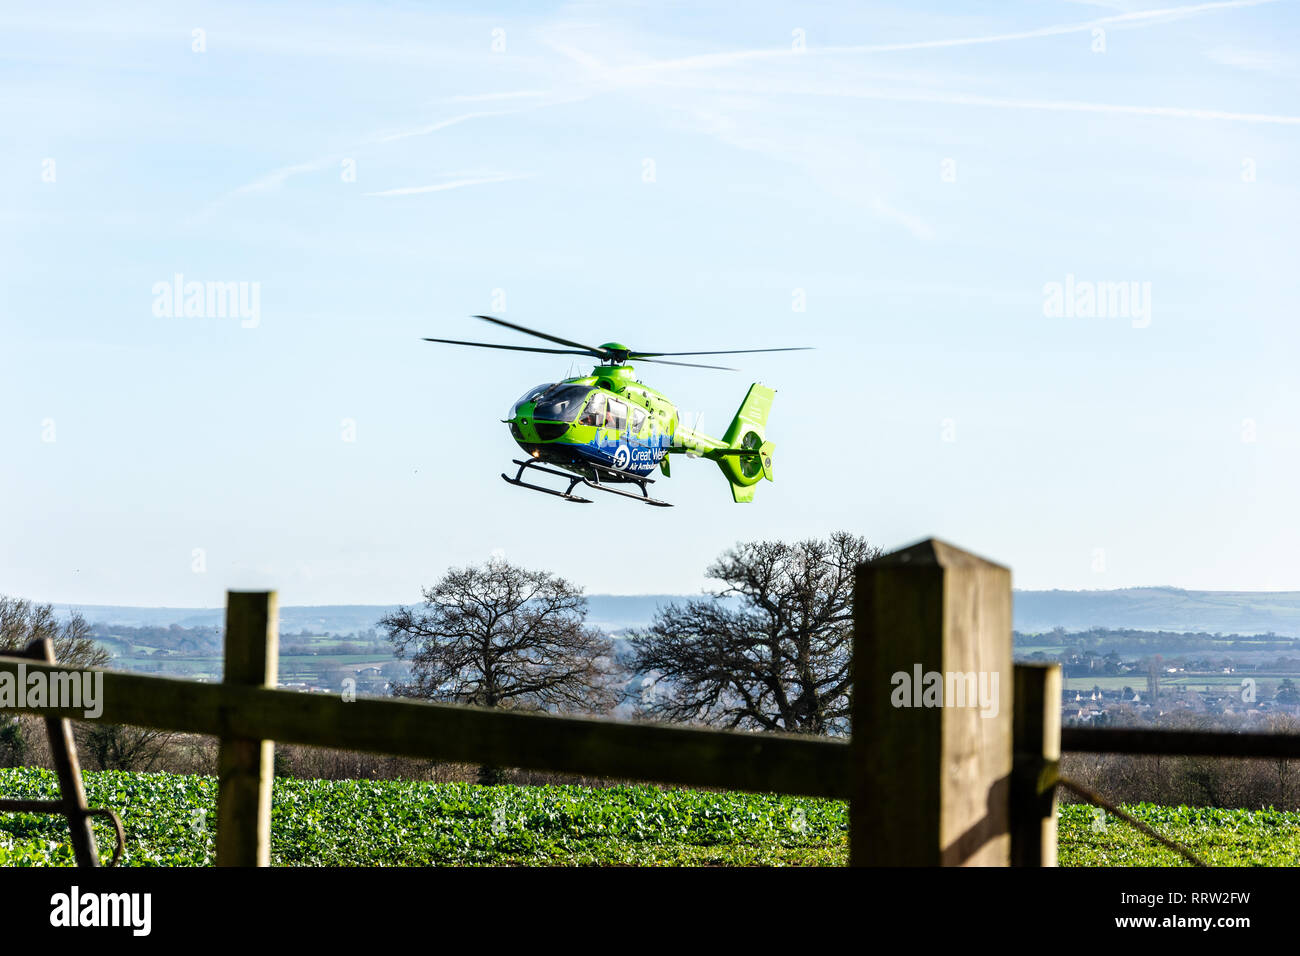 Bradford Leigh Wiltshire UK January 9th 2019 The Great Western air ambulance helicopter taking off from a field Stock Photo